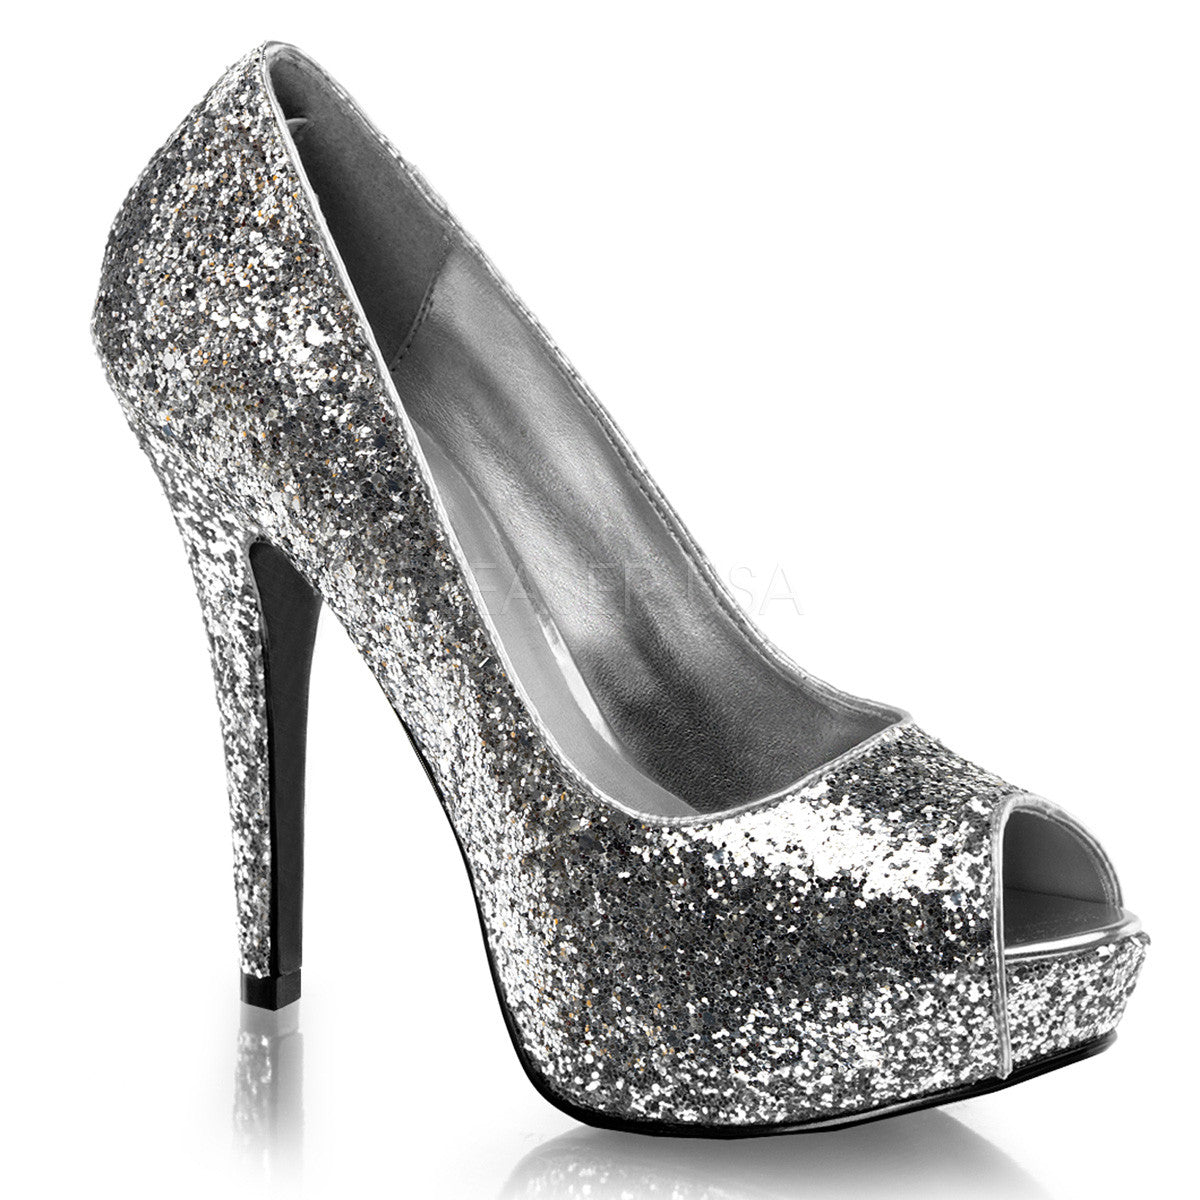 Peep shoes toe silver - results from brands Pleaser, Touch Ups, Nina, products like Womens TS35 Verrda Platform Slingback Heeled Sandals, Silver, US, Cecilio Women's Ellie Skylar - Black/Silver PU Platform Shoes, Fly London YahlFly (Silver Borgogna) Women's Shoes, Women's Shoes.